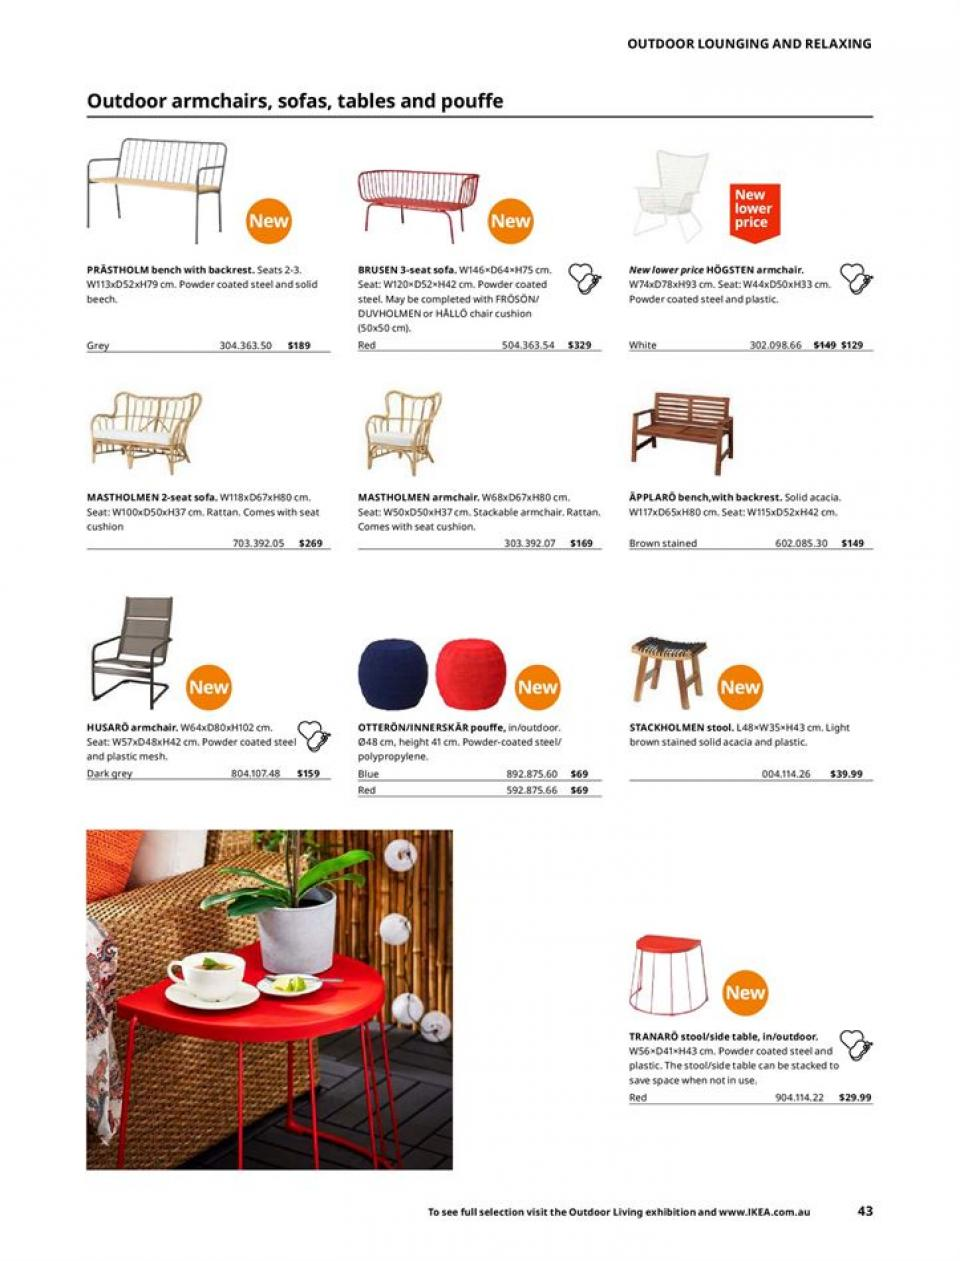 remarkable ikea kitchen catalogue 2020 | Ikea Catalogue Outdoor 2019 - 2020 (Page 43)